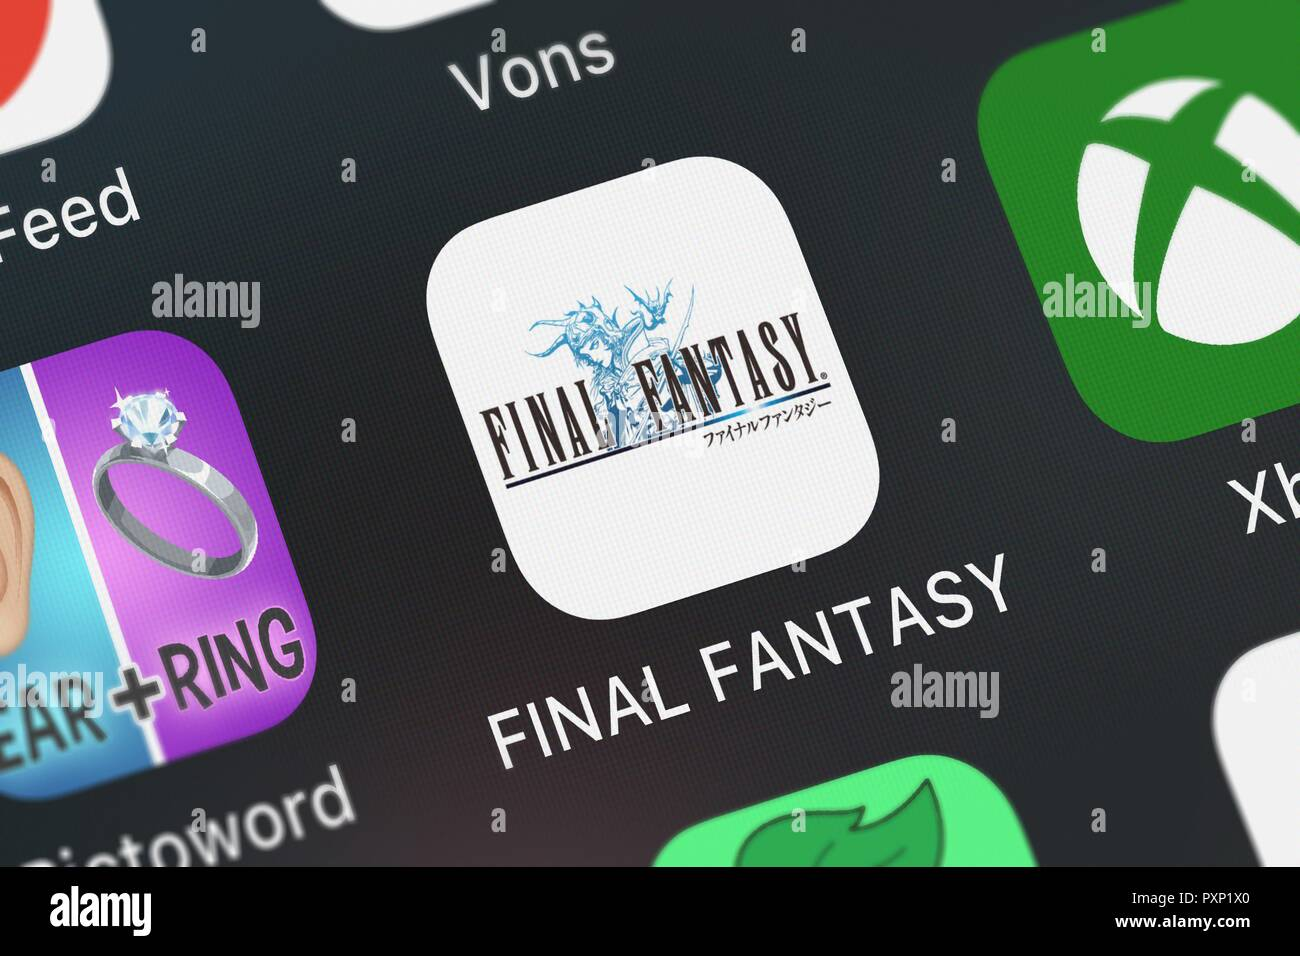 London, United Kingdom - October 23, 2018: Close-up shot of the FINAL FANTASY mobile app from SQUARE ENIX INC. - Stock Image